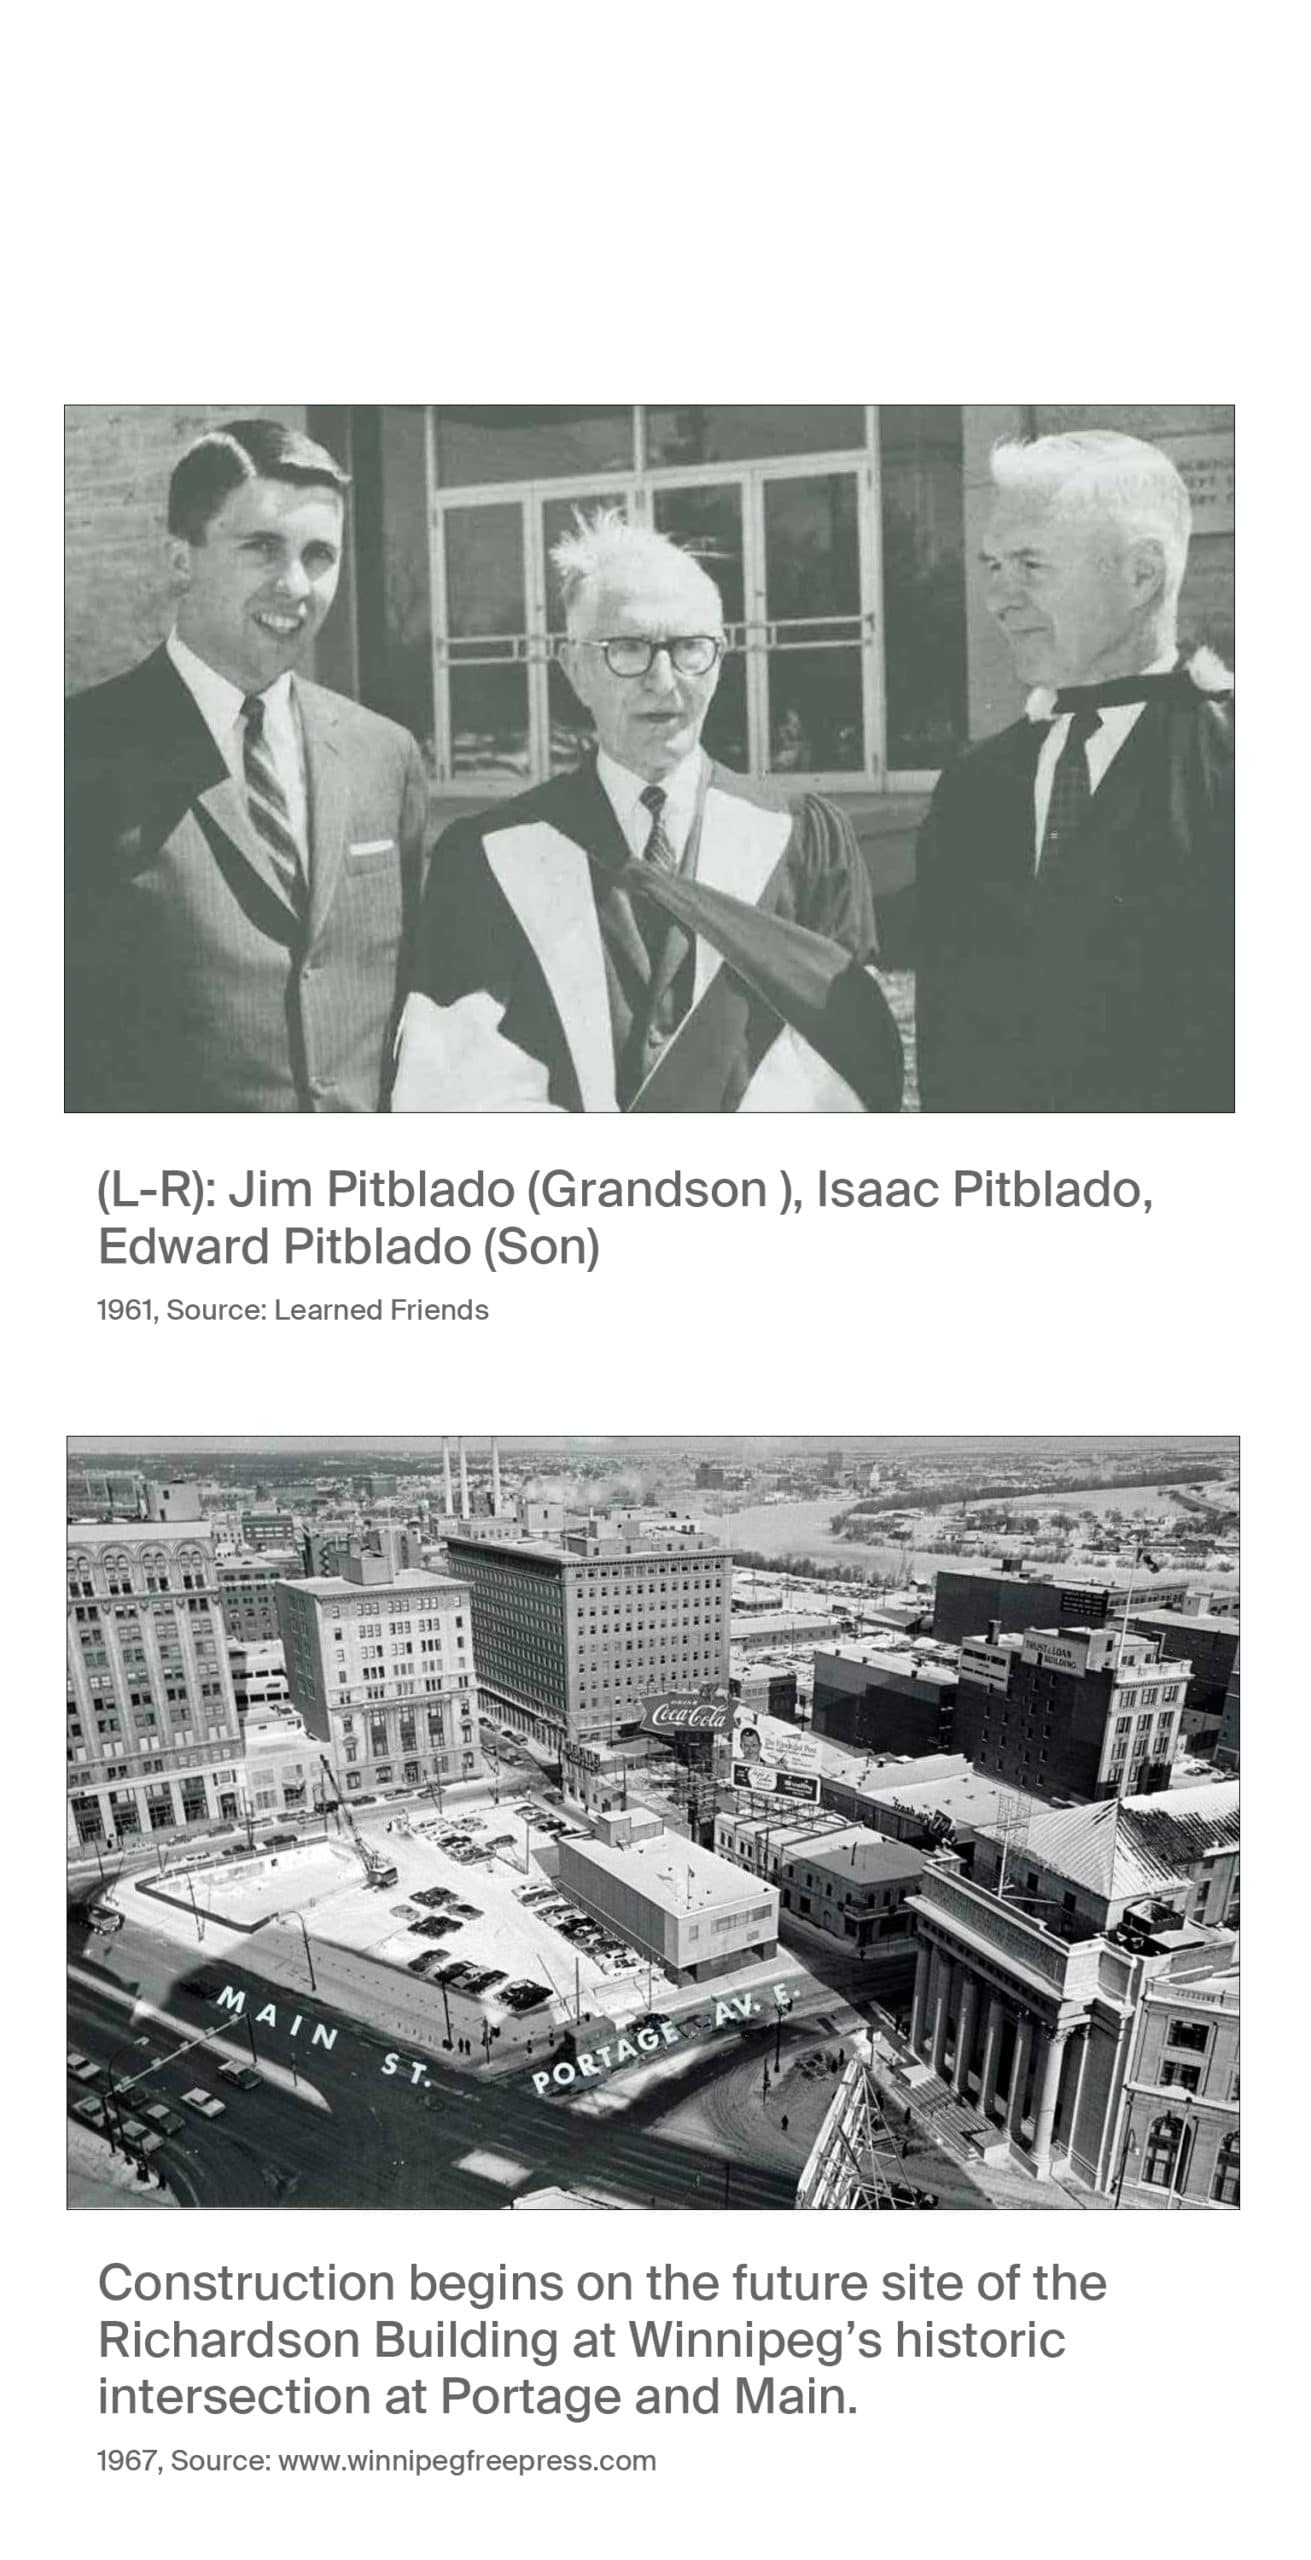 Two images, Image 1 Jim Pitblado (grandson), Isaac Pitblado, and Edward Pitblado (son), 1961, source learned friends. Image 2, 1967 construction photo of the Richardson Building bneing built at Portage and Main, source winnipegfreepress.com